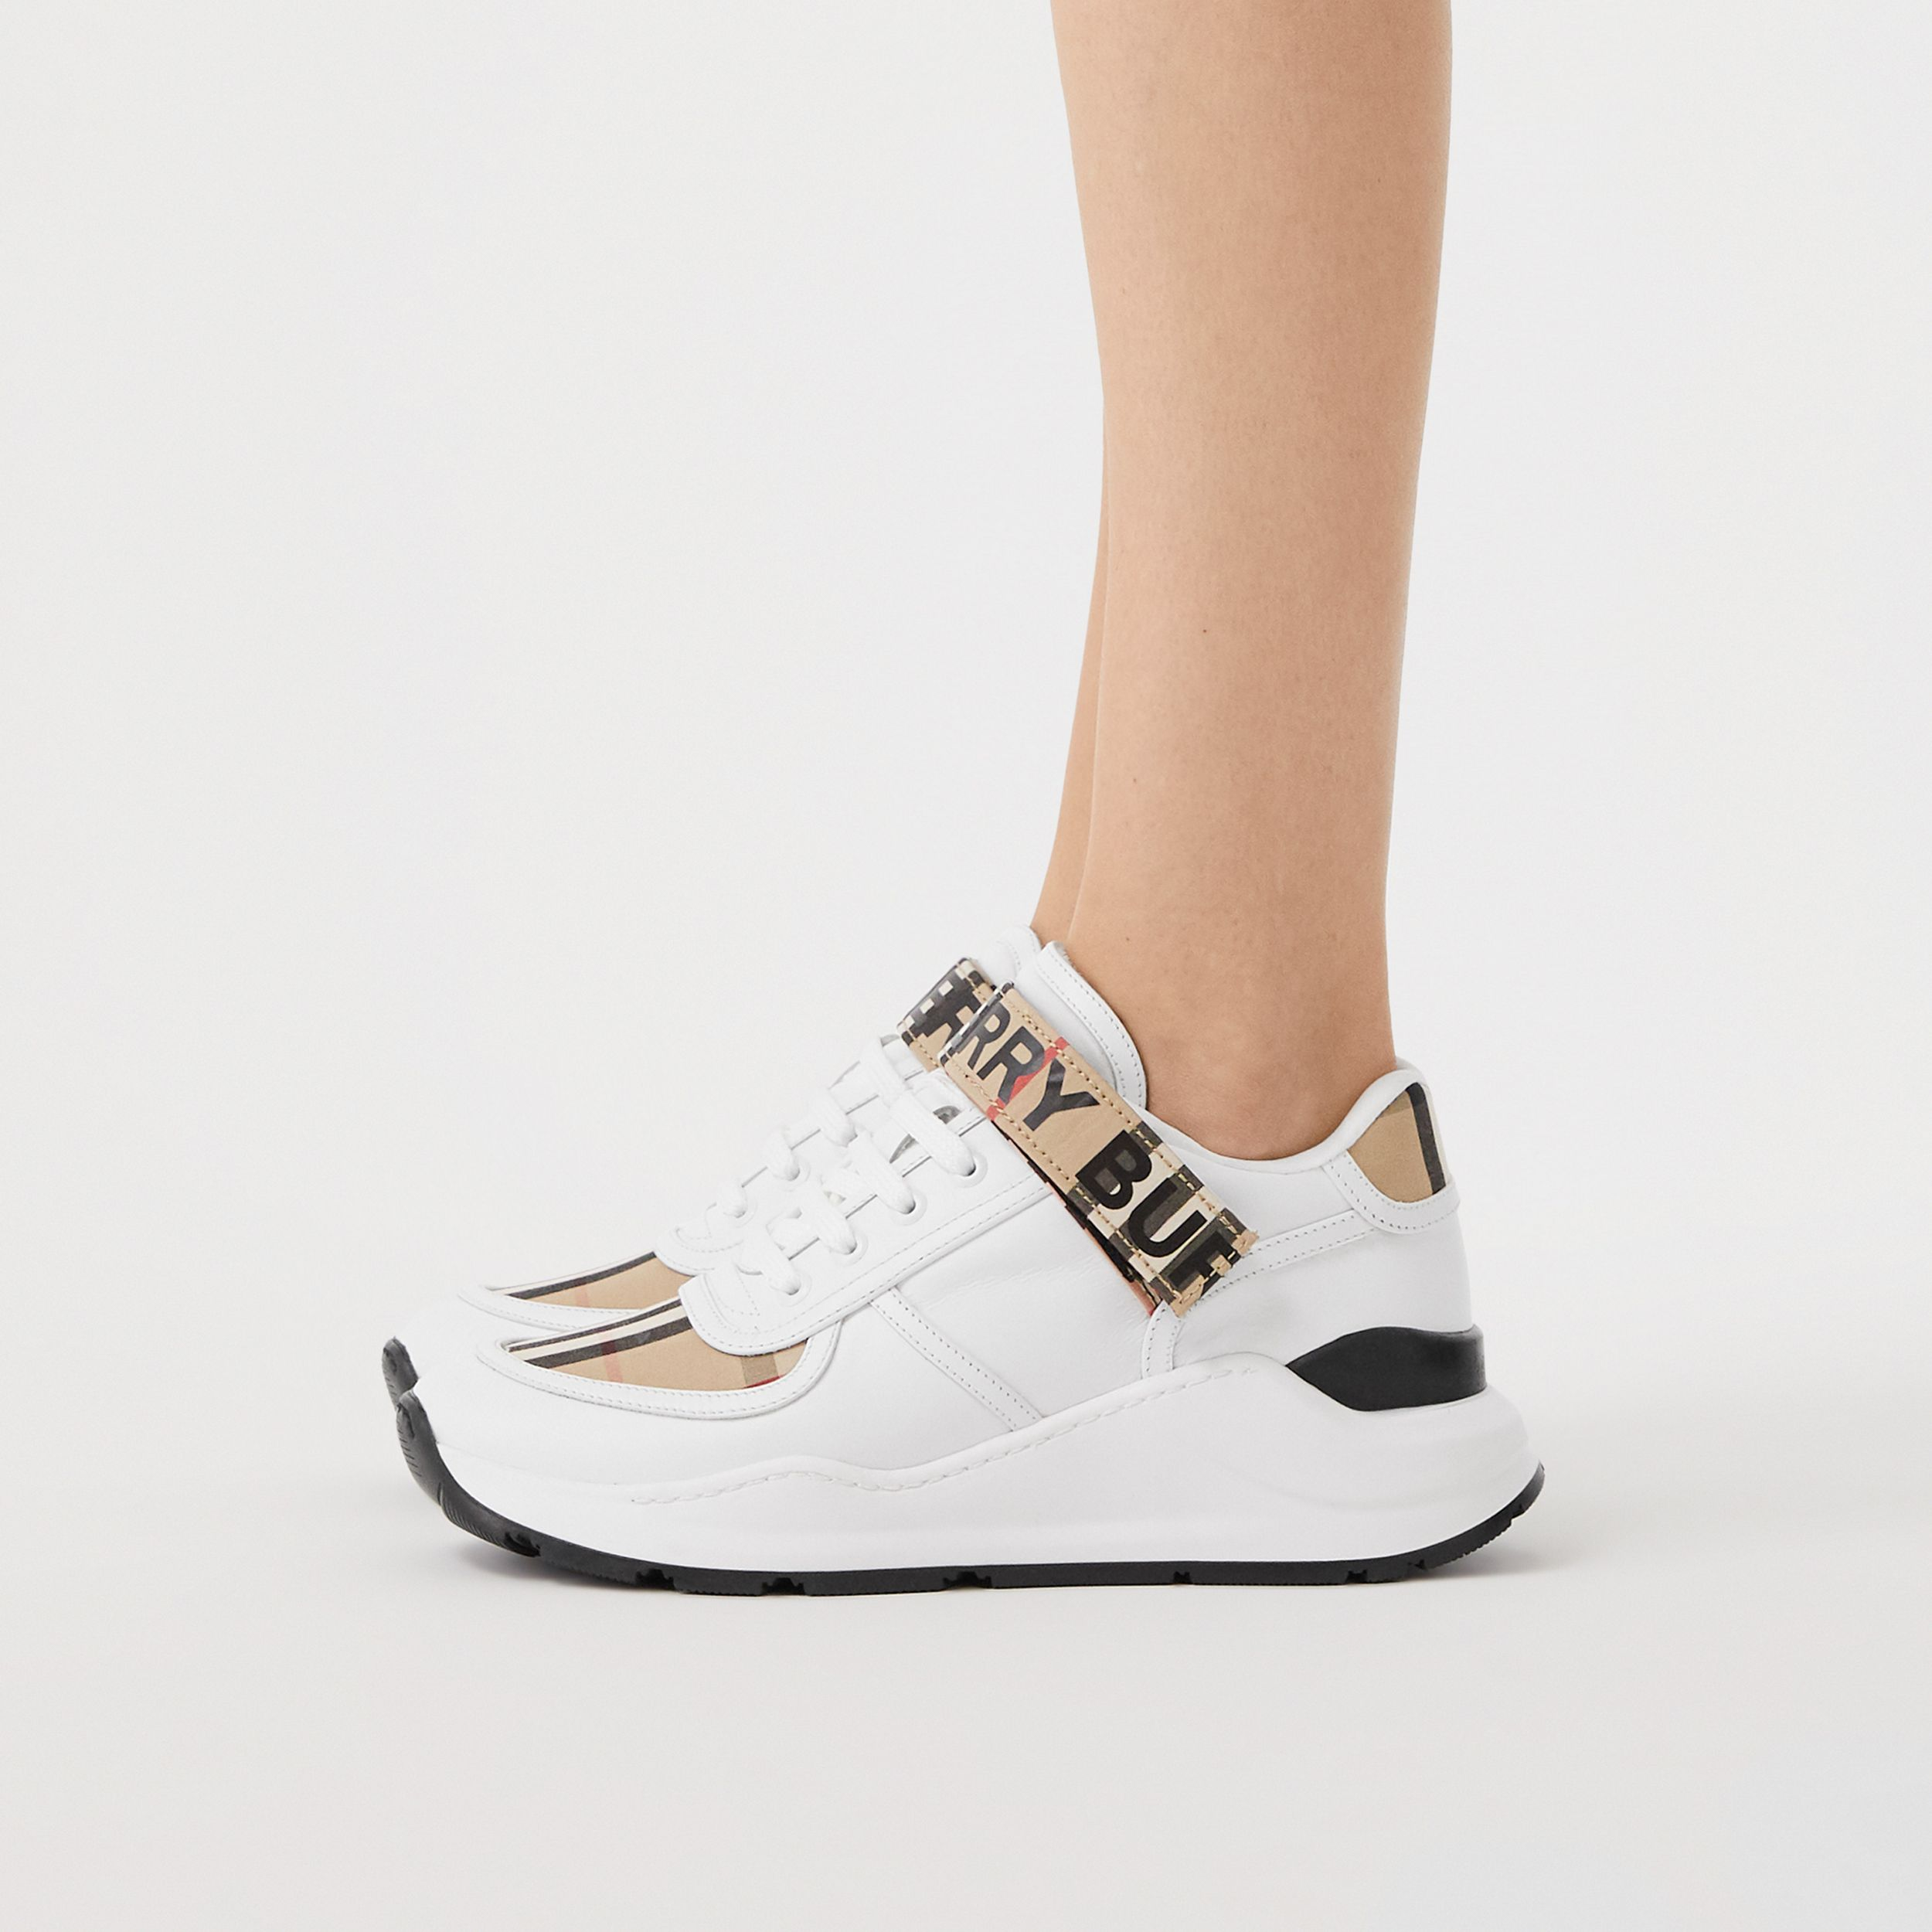 Logo Print Vintage Check and Leather Sneakers in Archive Beige - Women | Burberry - 3